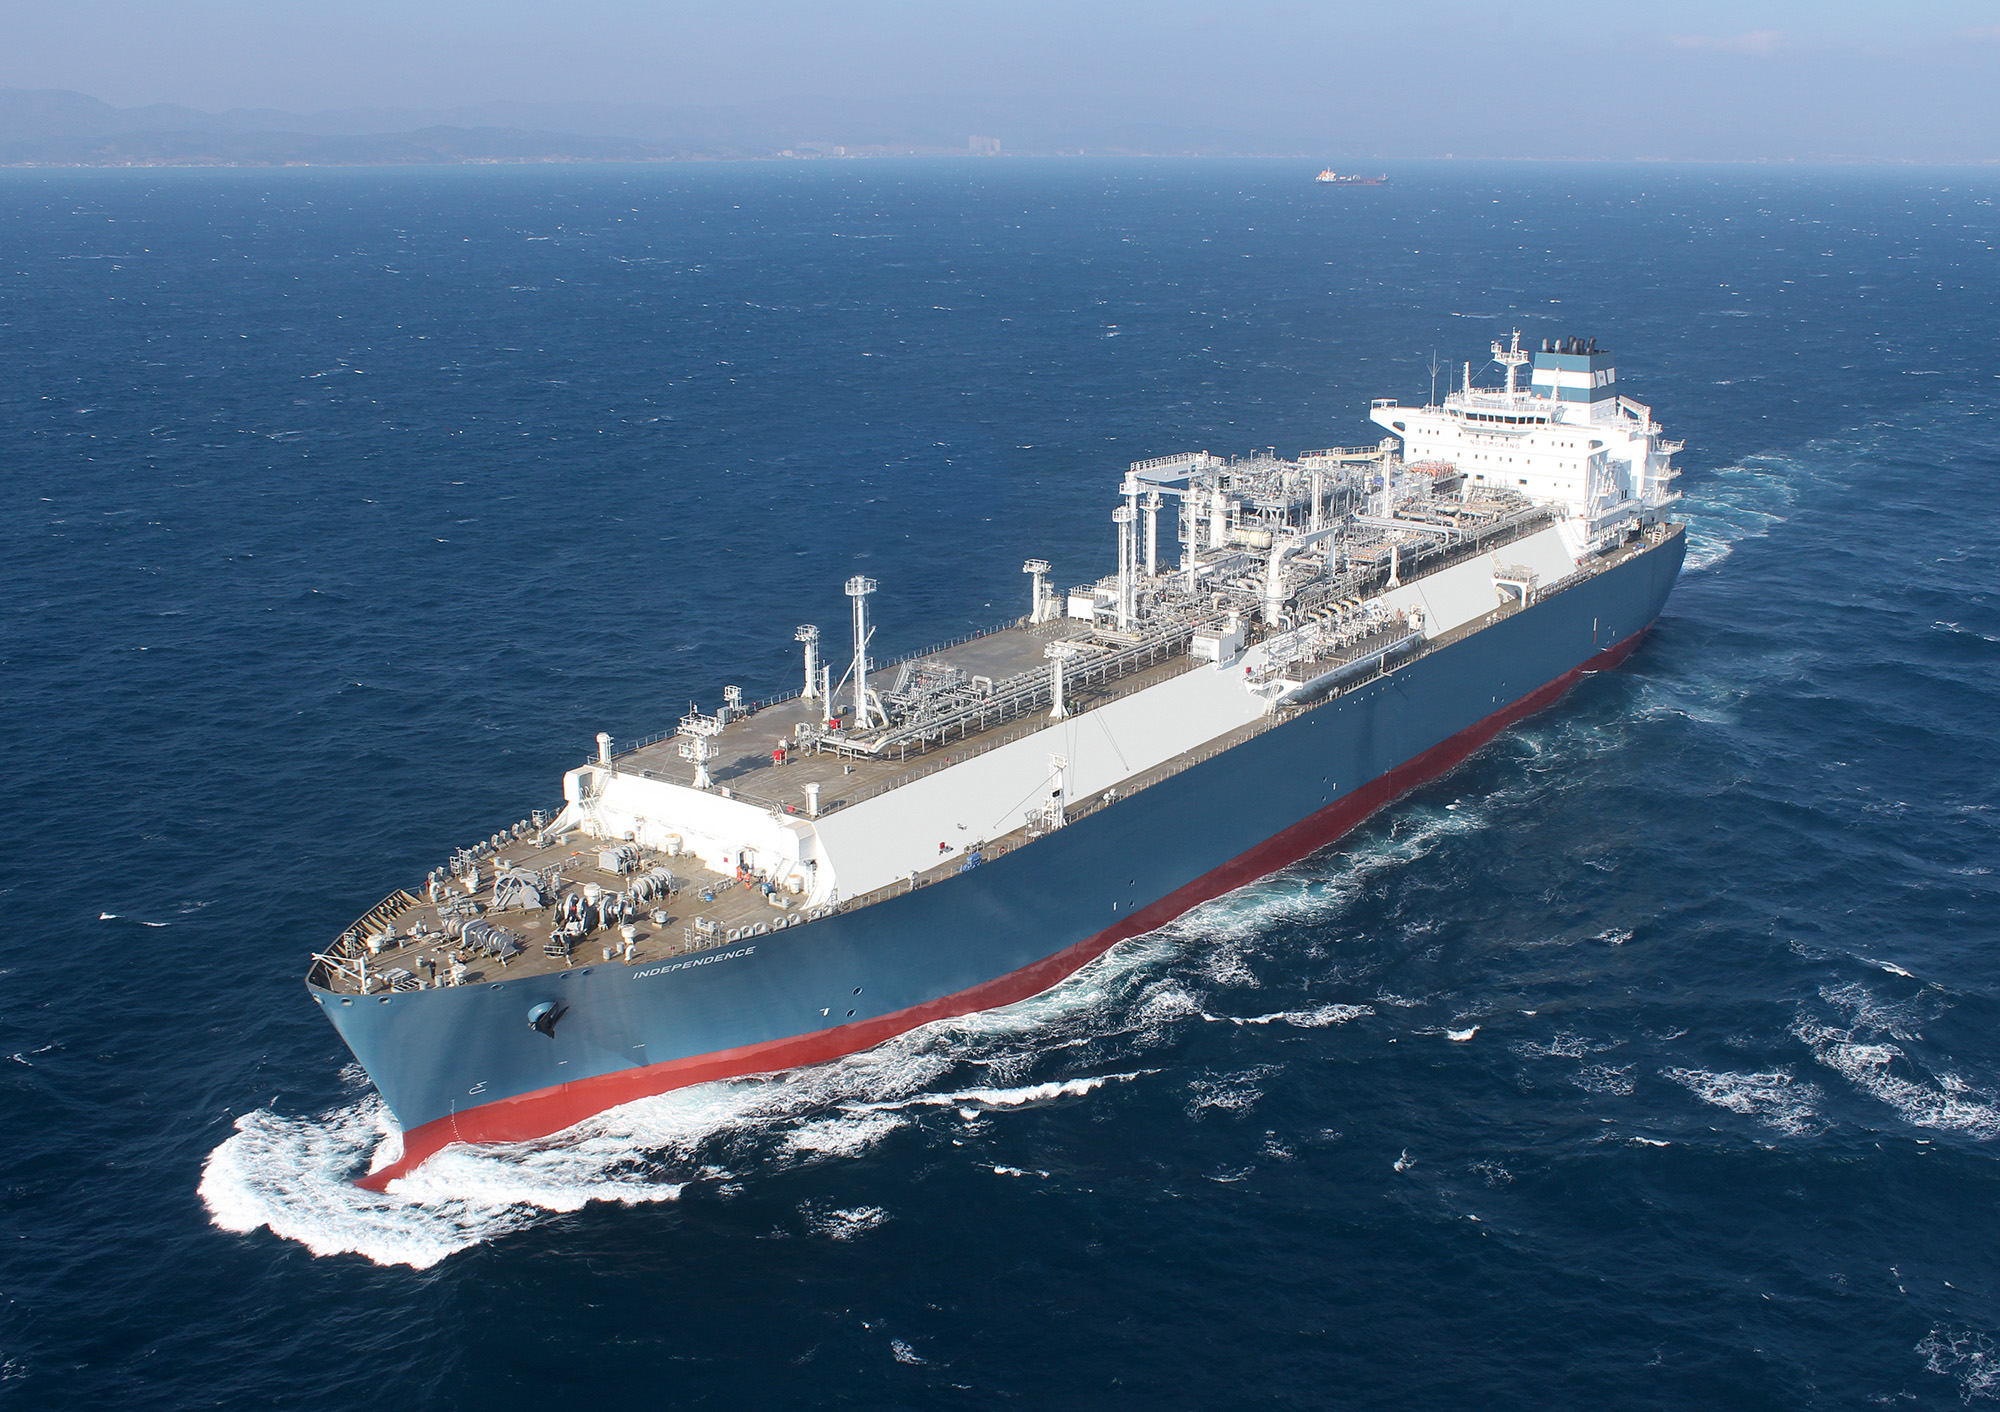 Hyundai Heavy Industries has succeeded in independently developing an advanced liquefied natural gas (LNG) regasification system.